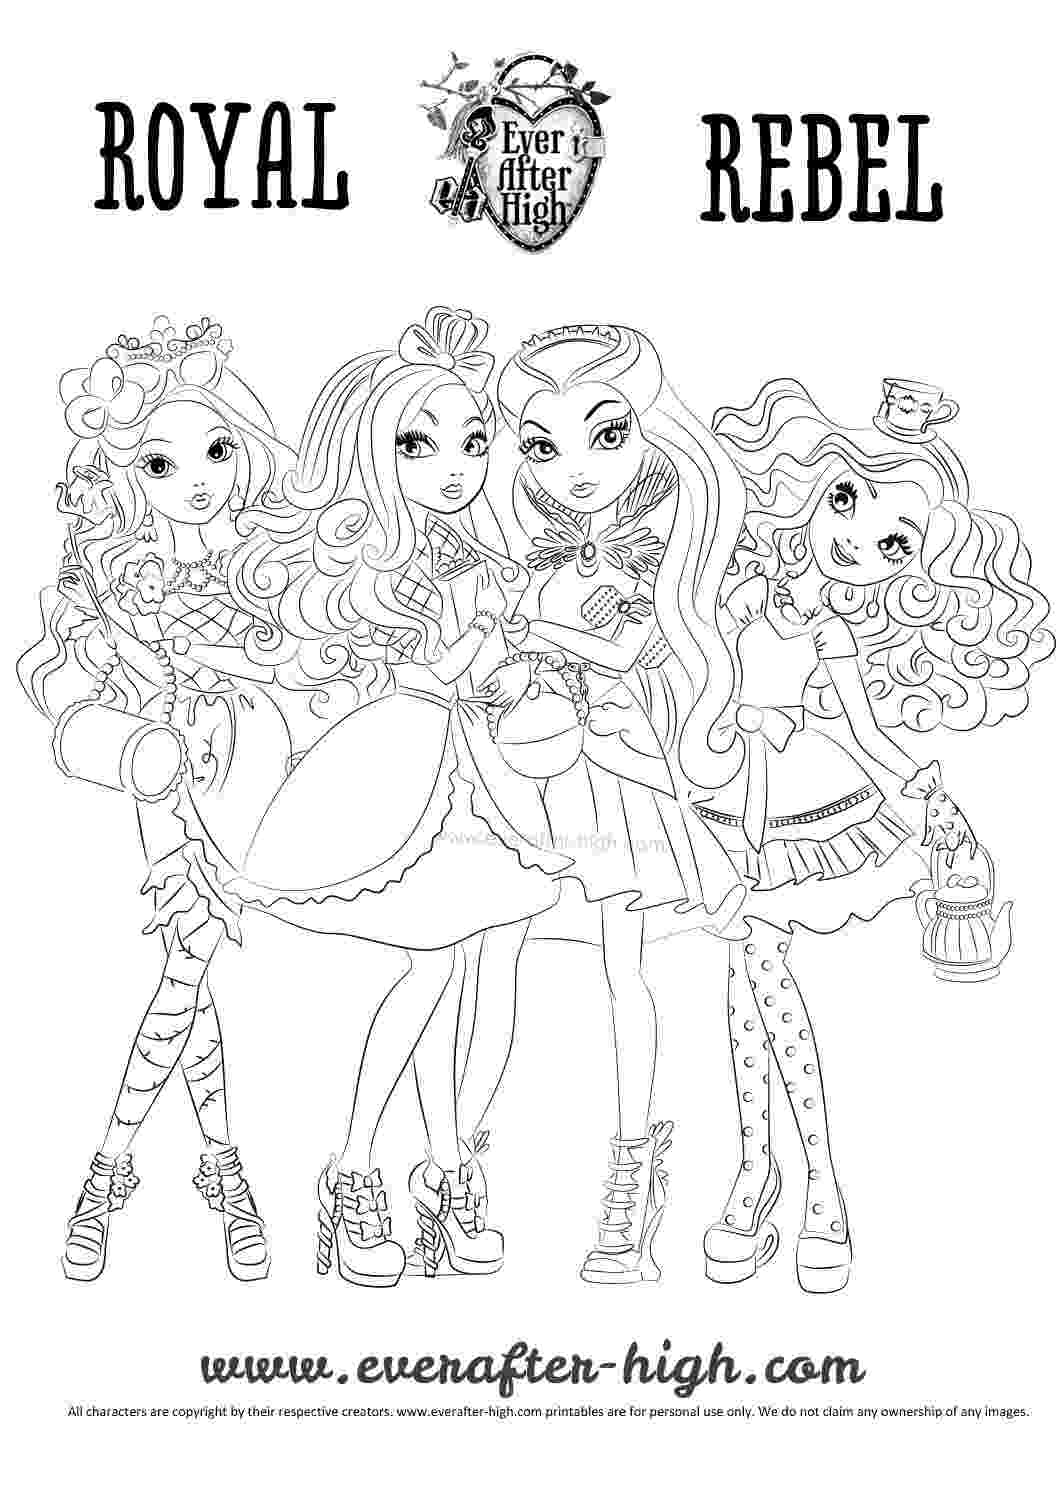 ever after high coloring sheets ever after high ca cupid thronecoming coloring page ever sheets high after coloring